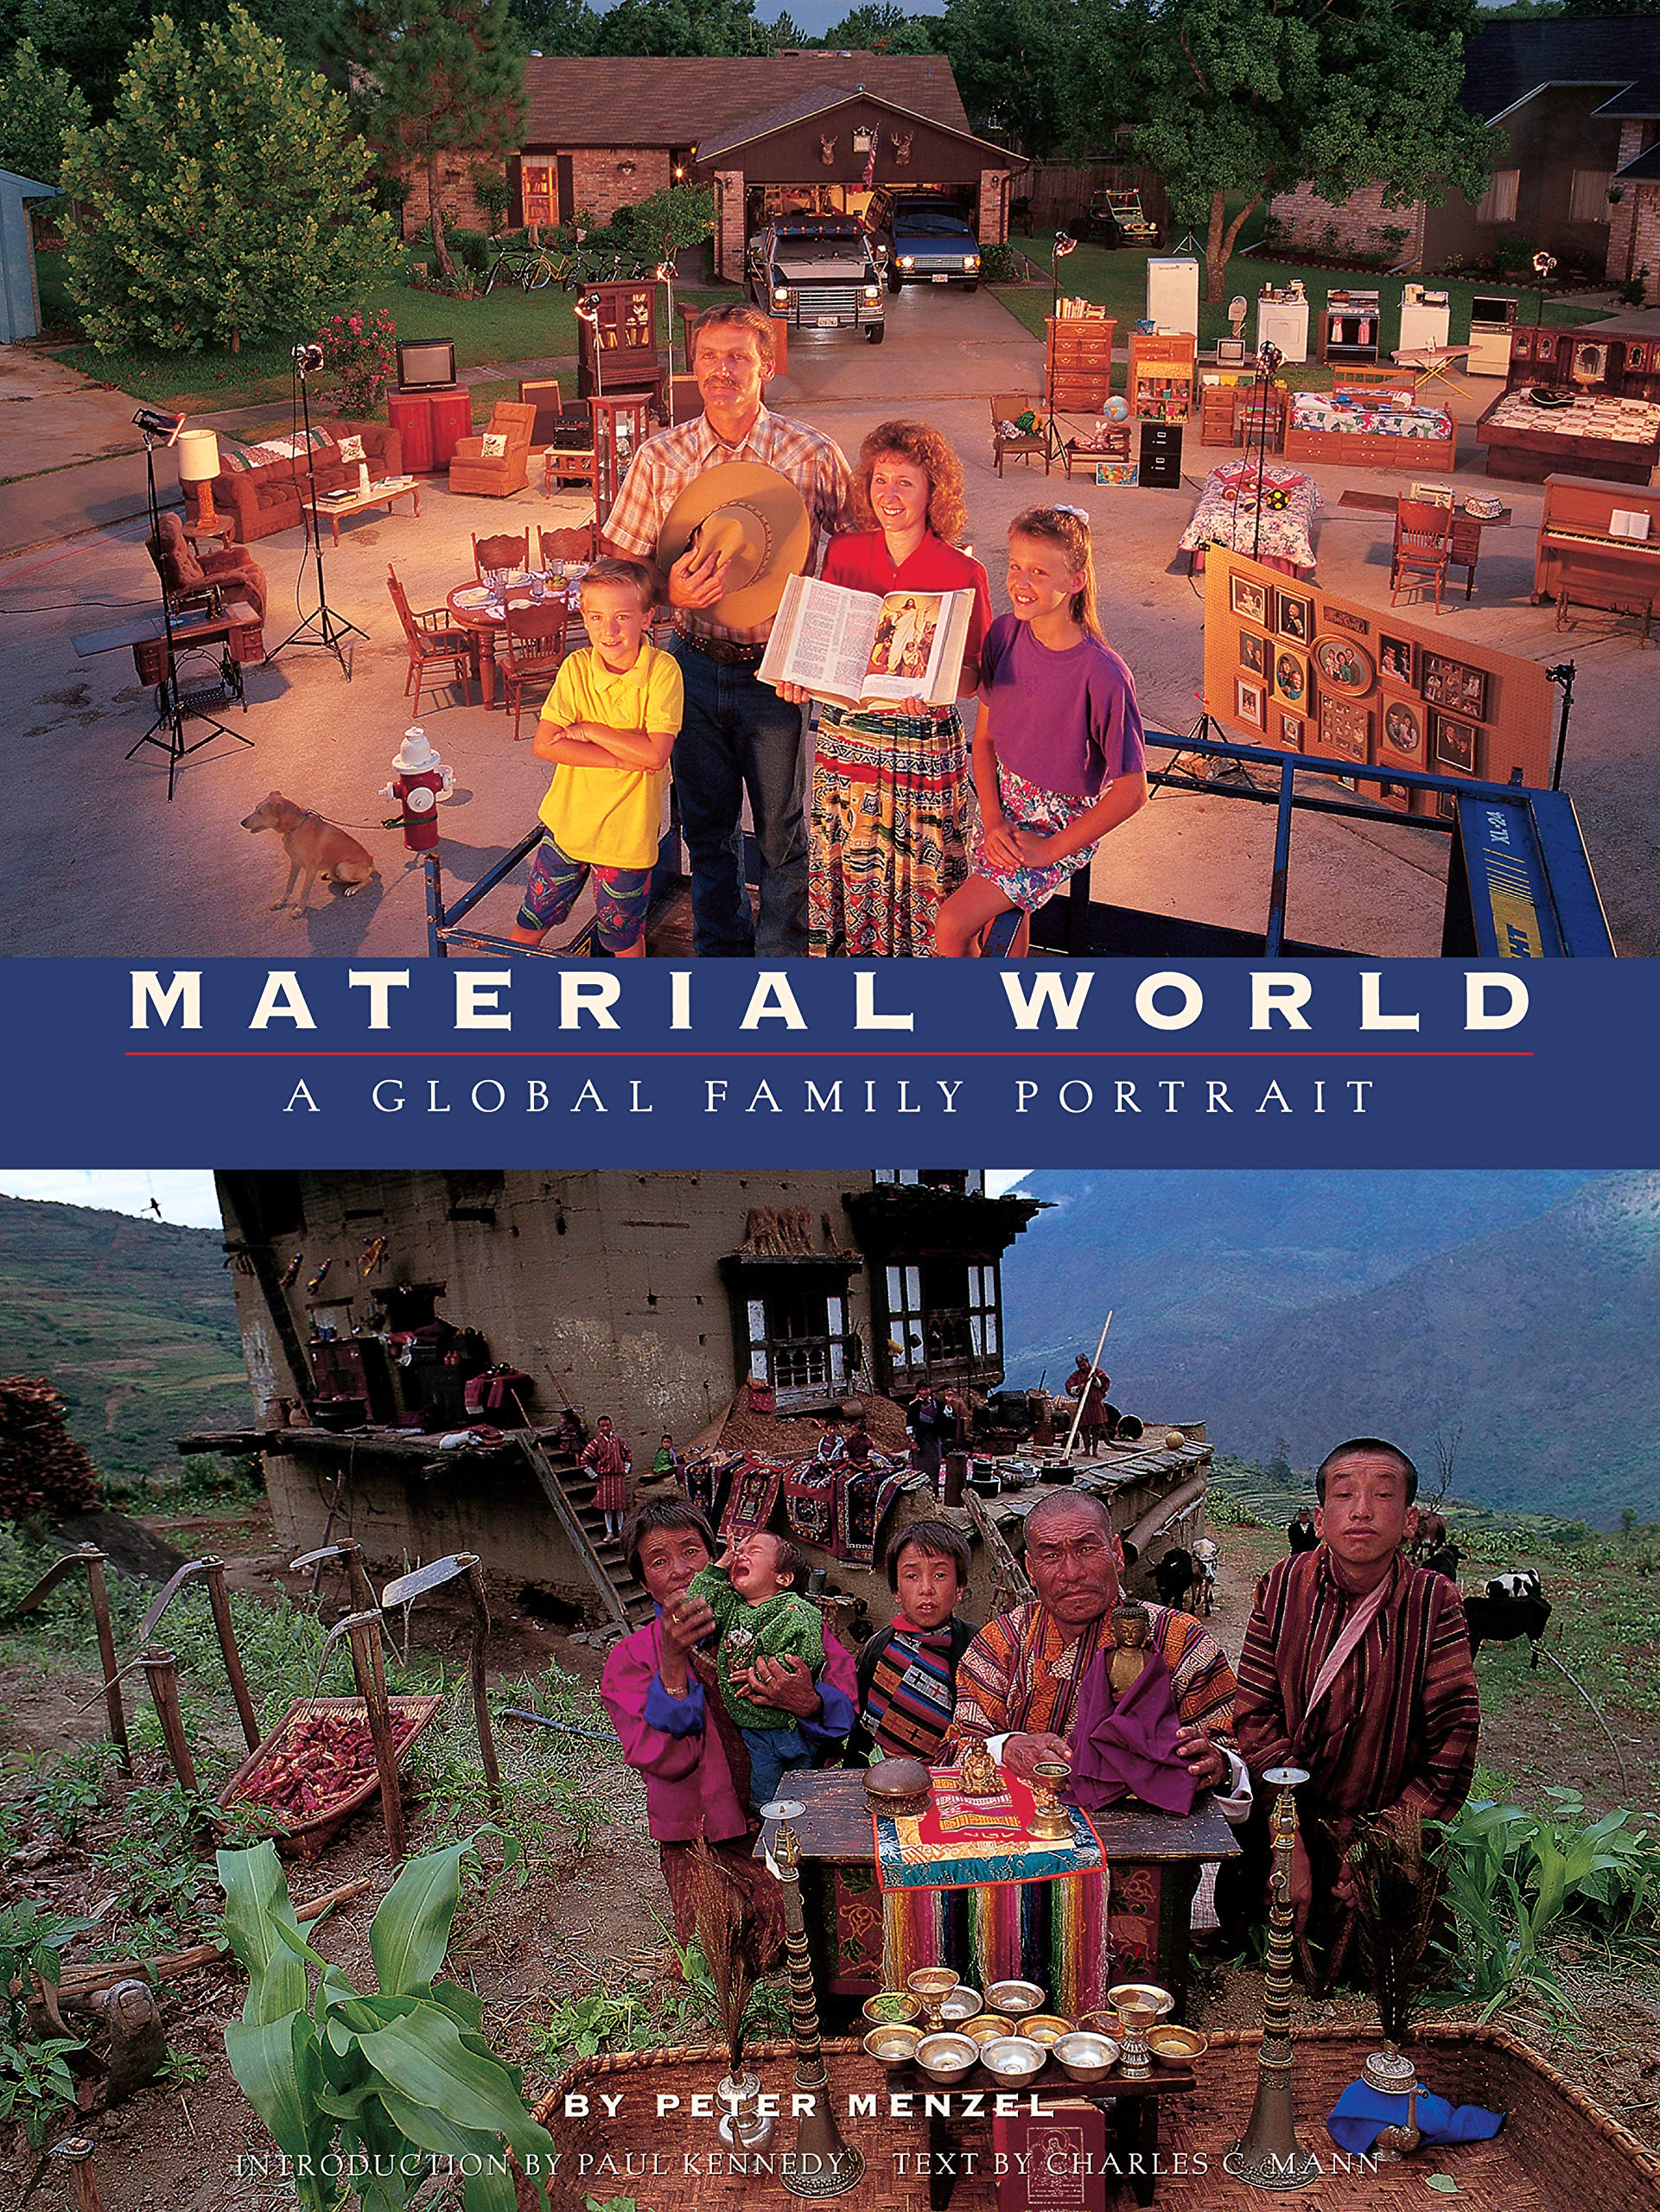 Material World: A Global Family Portrait: Peter Menzel, Charles C. Mann,  Paul Kennedy: 9780871564306: Amazon.com: Books